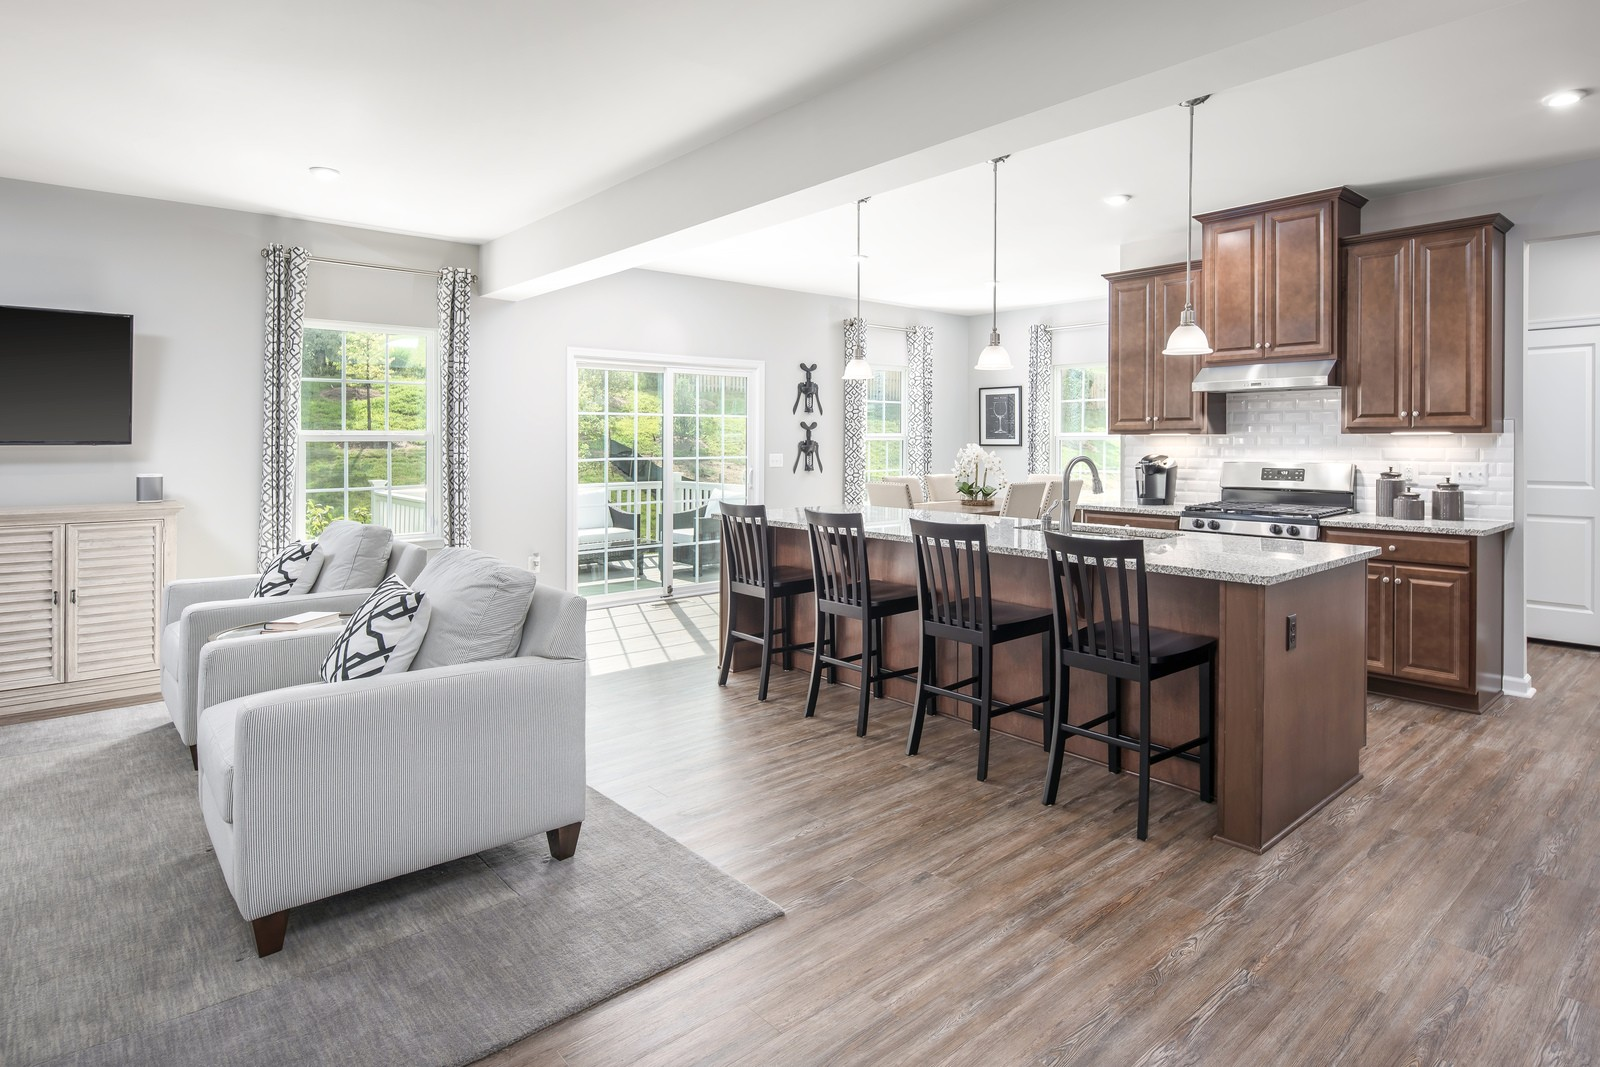 Columbia Plan At Willow Brook Farm In Loveland Oh By Ryan Homes